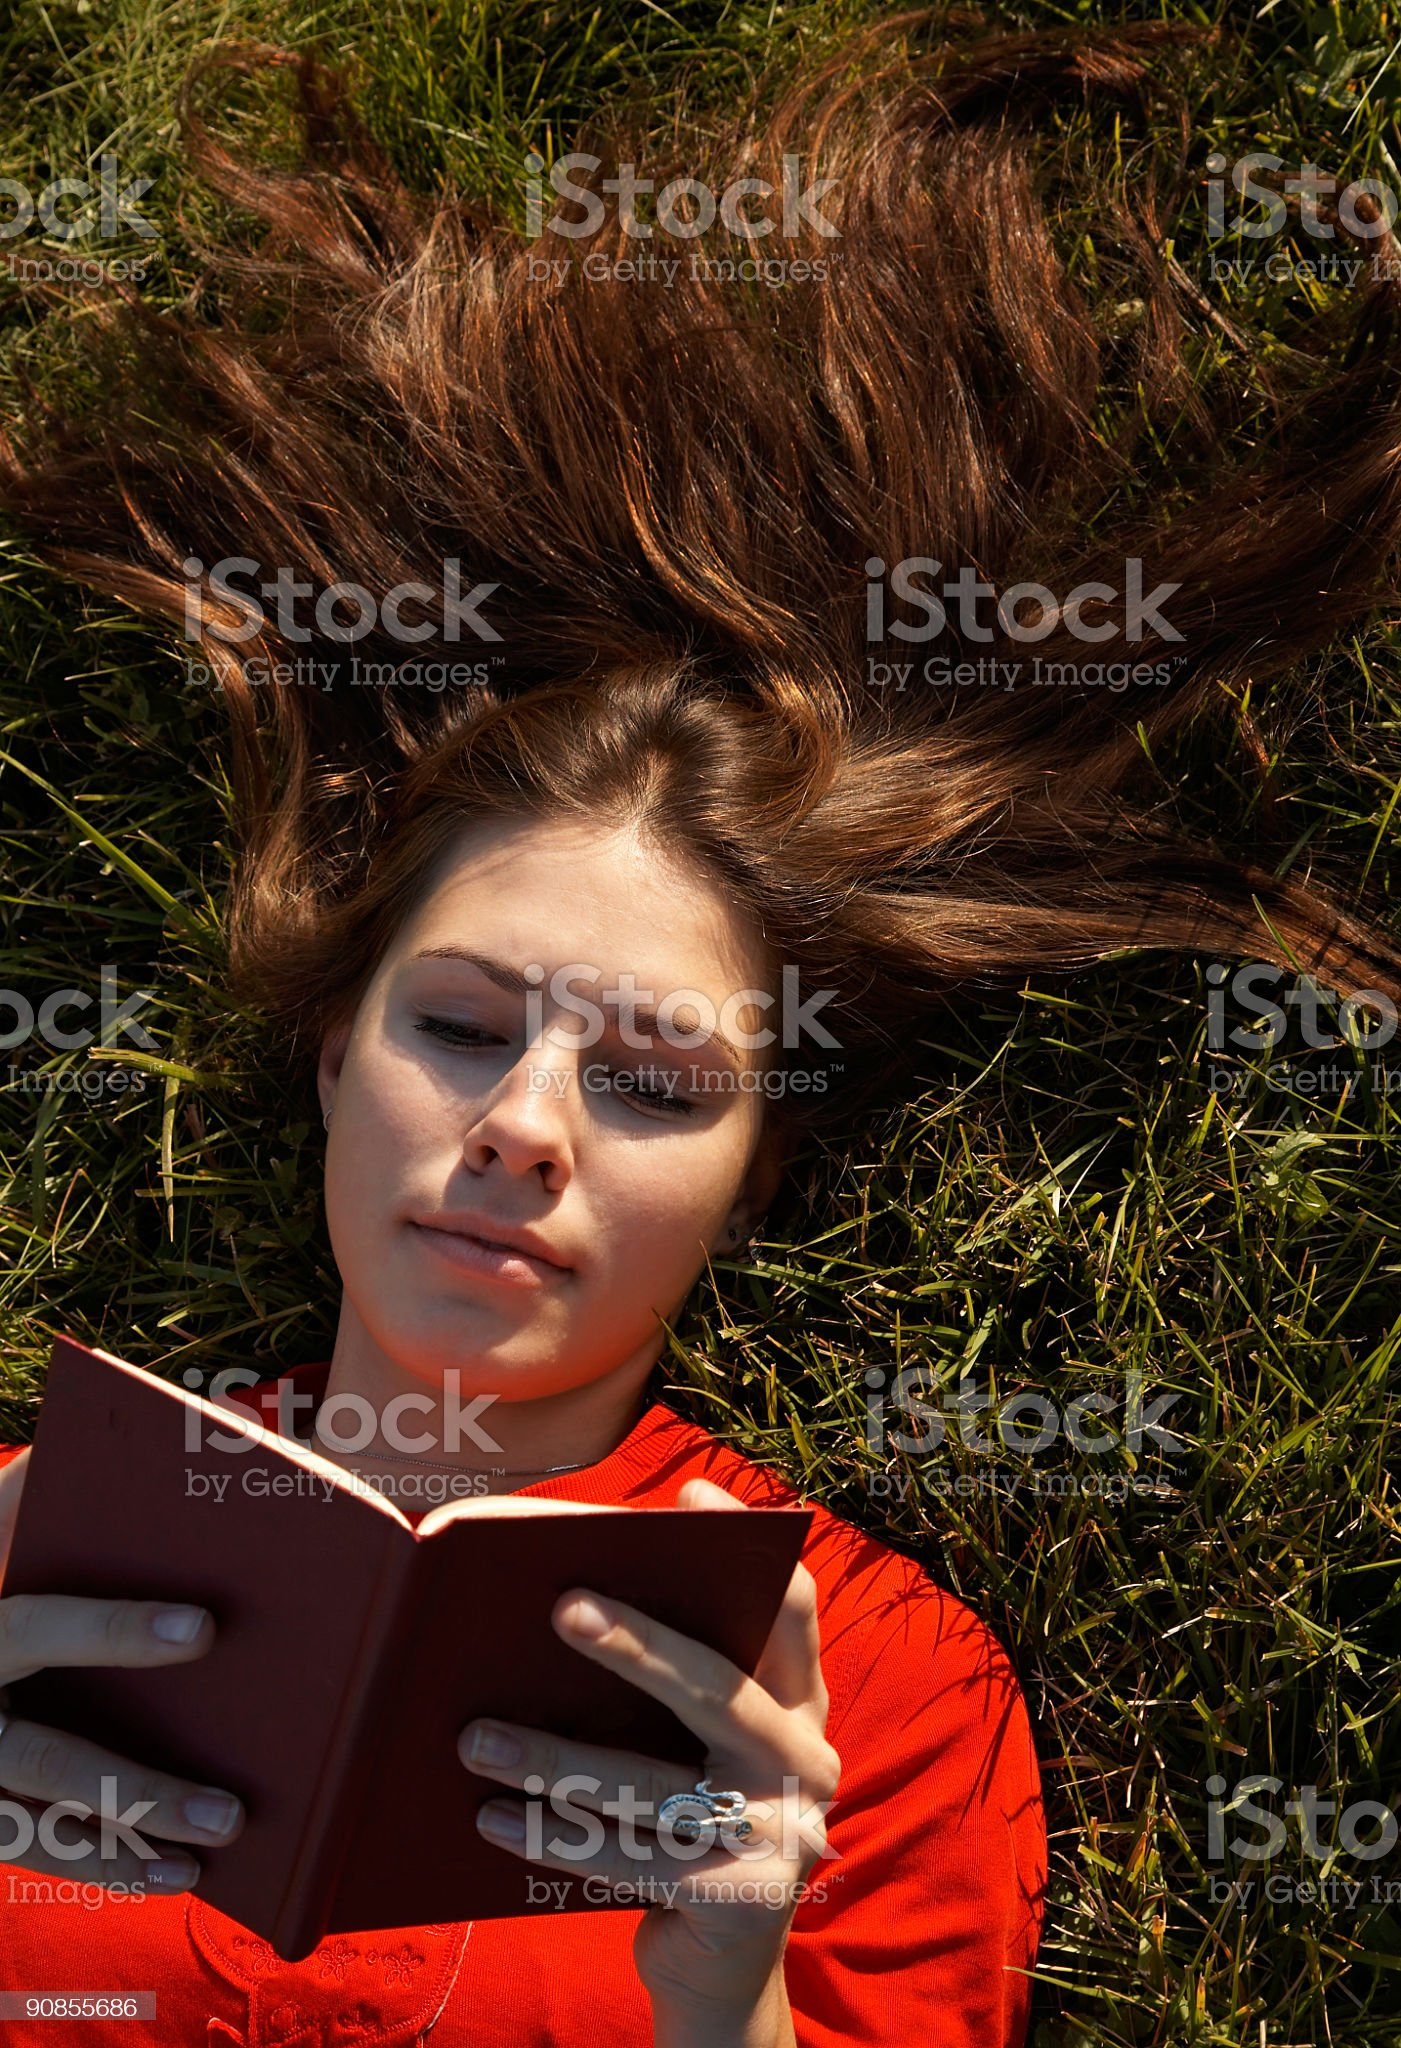 Girls on the grass royalty-free stock photo